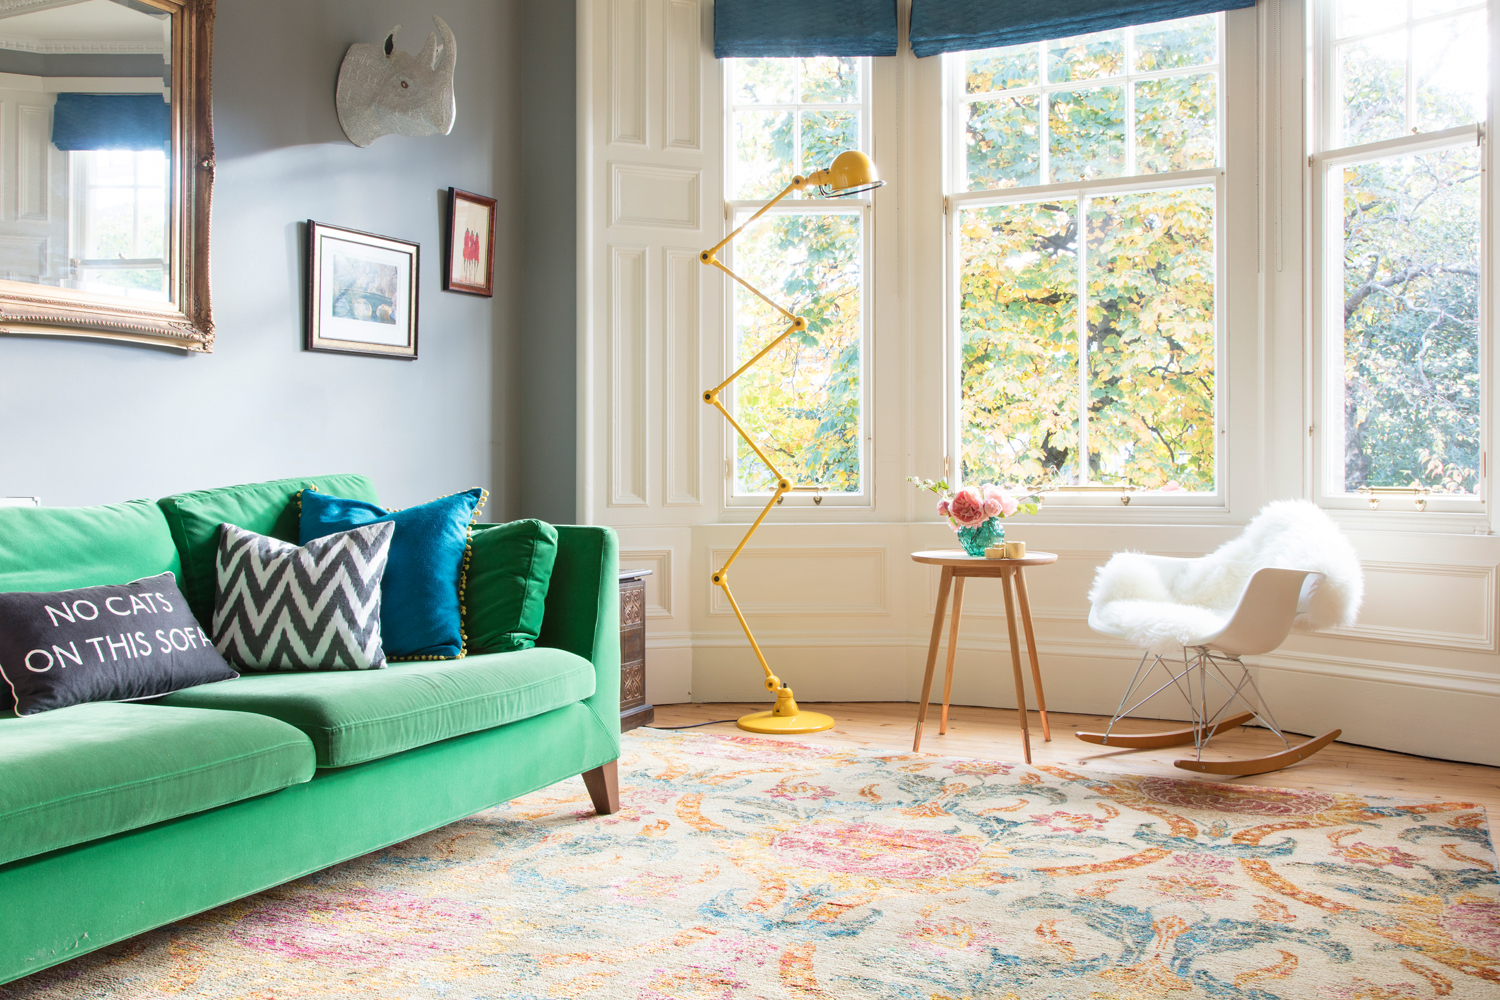 Wendy Morrison Design handknotted wool and silk  Raika  rug in The Pink House/Photo: Susie Lowe